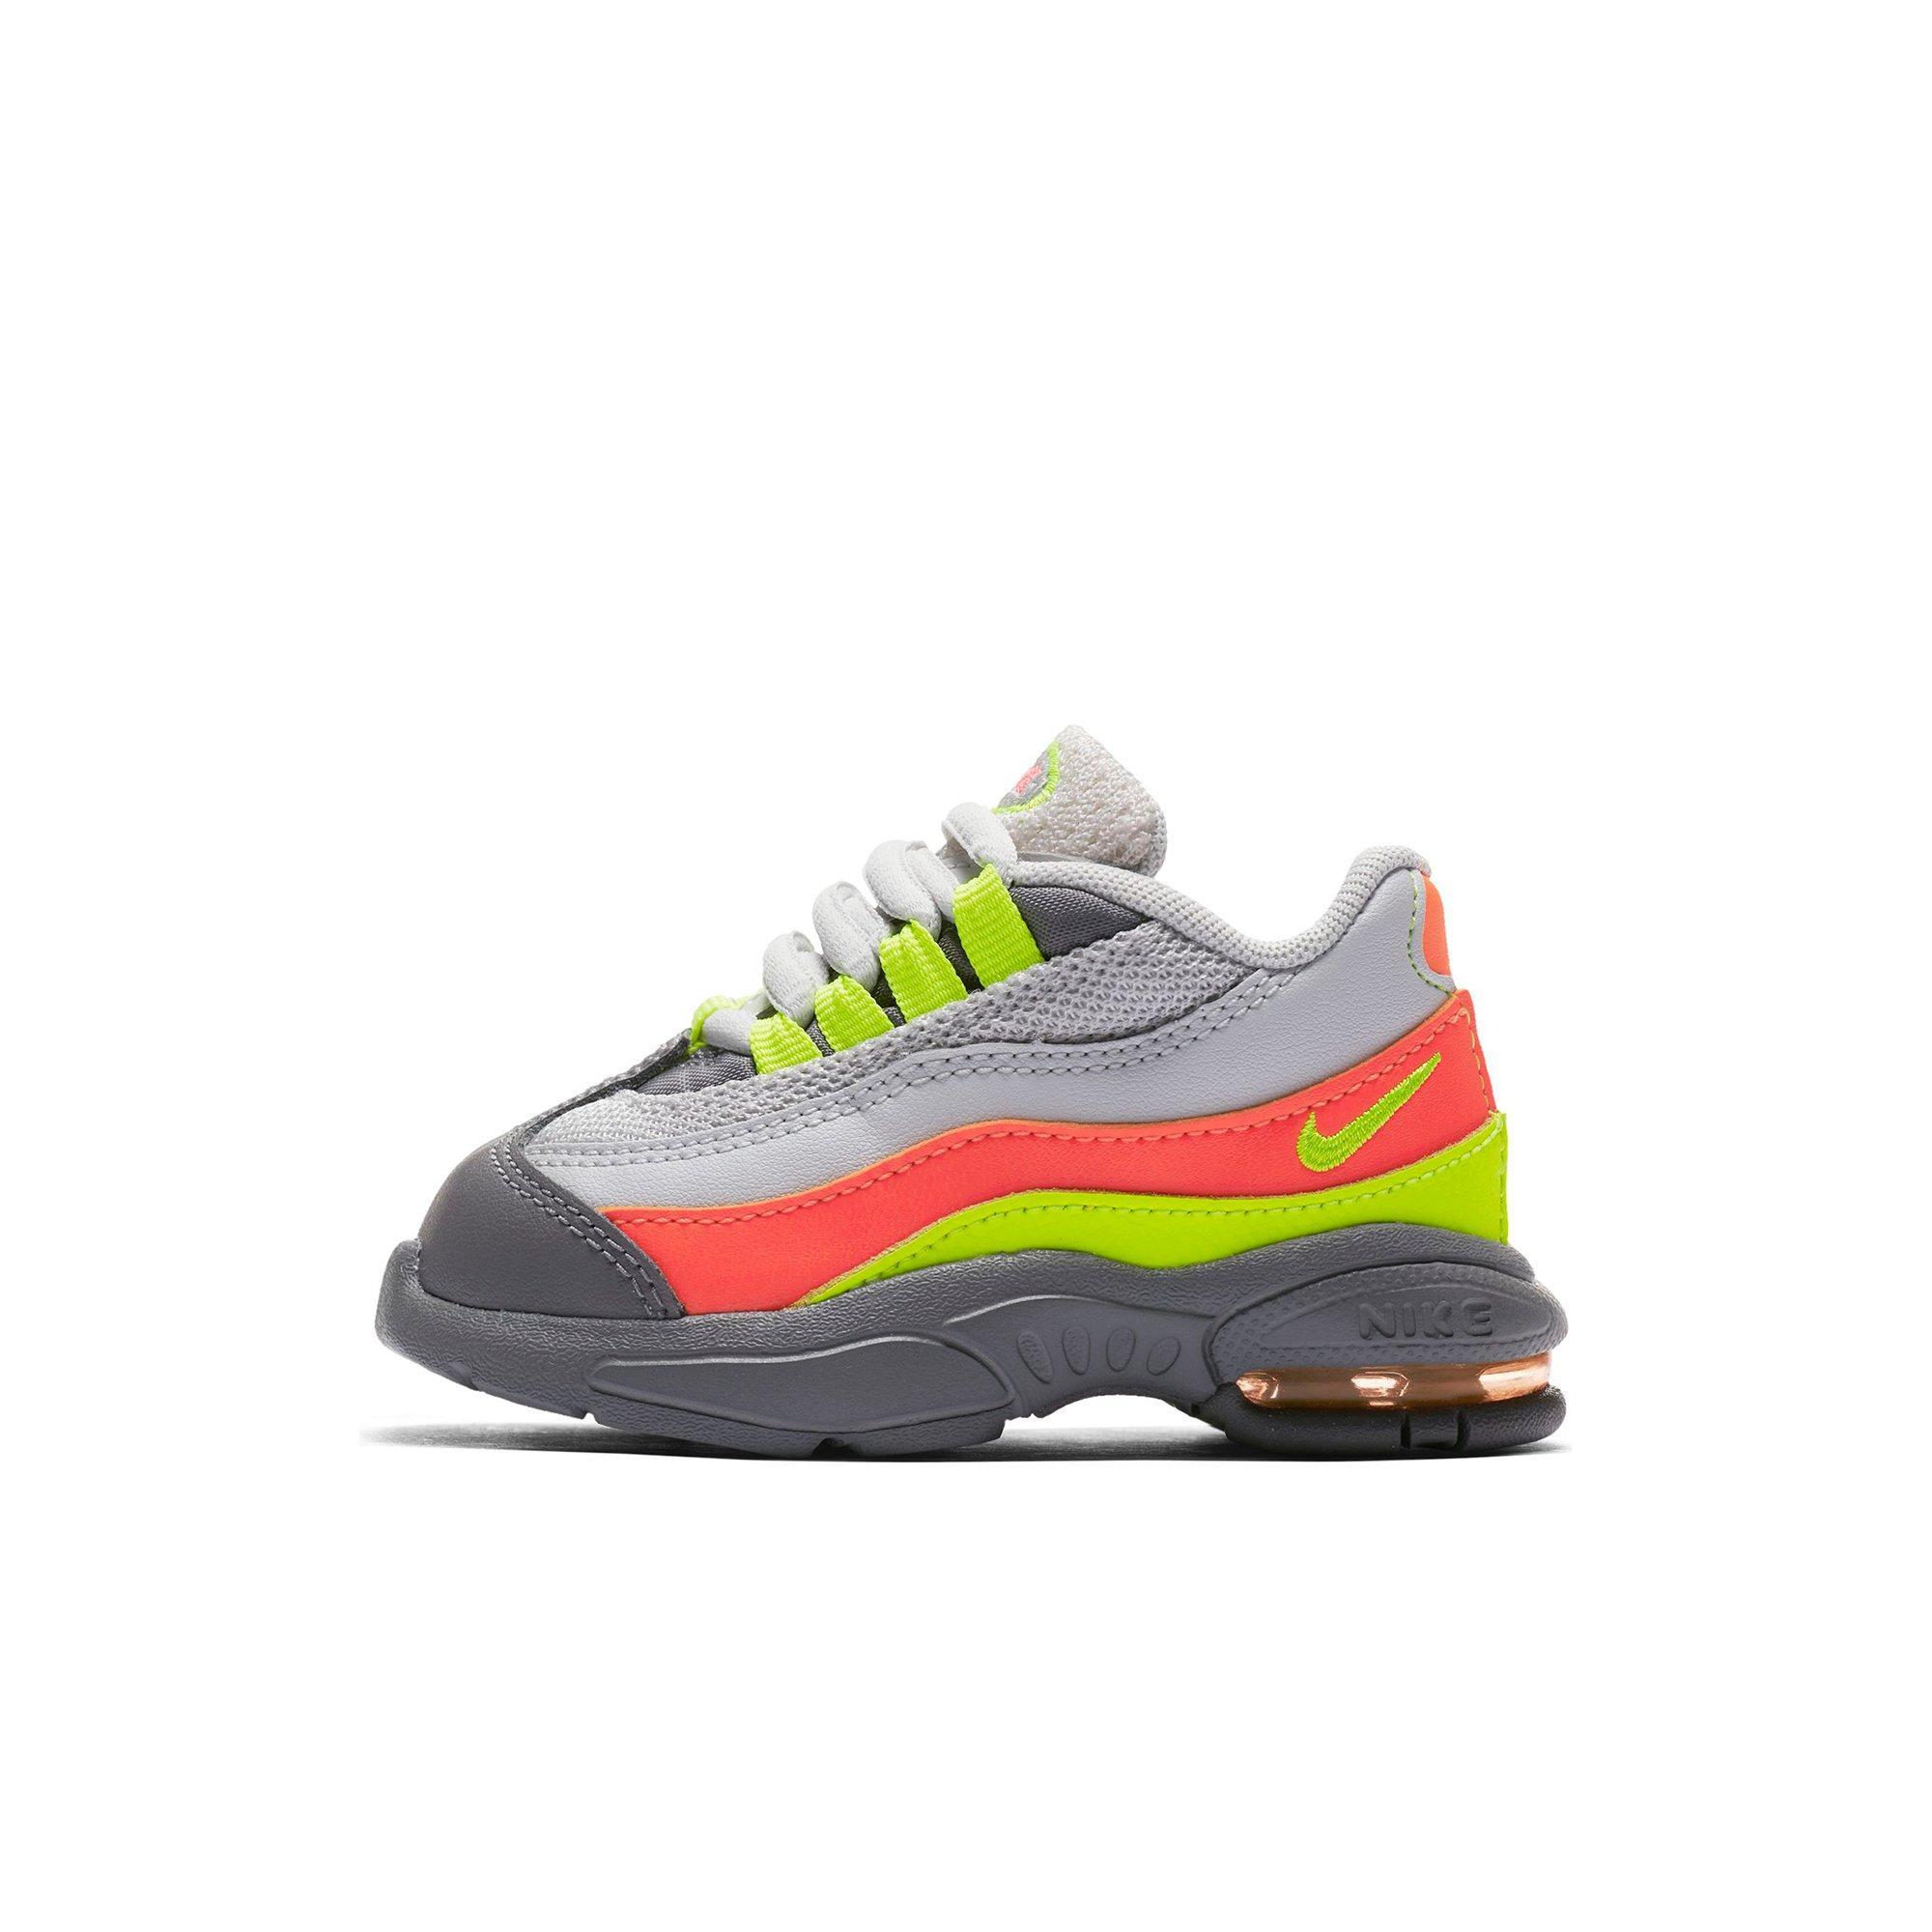 competitive price 7b3d6 a9d5c ... nike toddler air max 95 running shoes ...